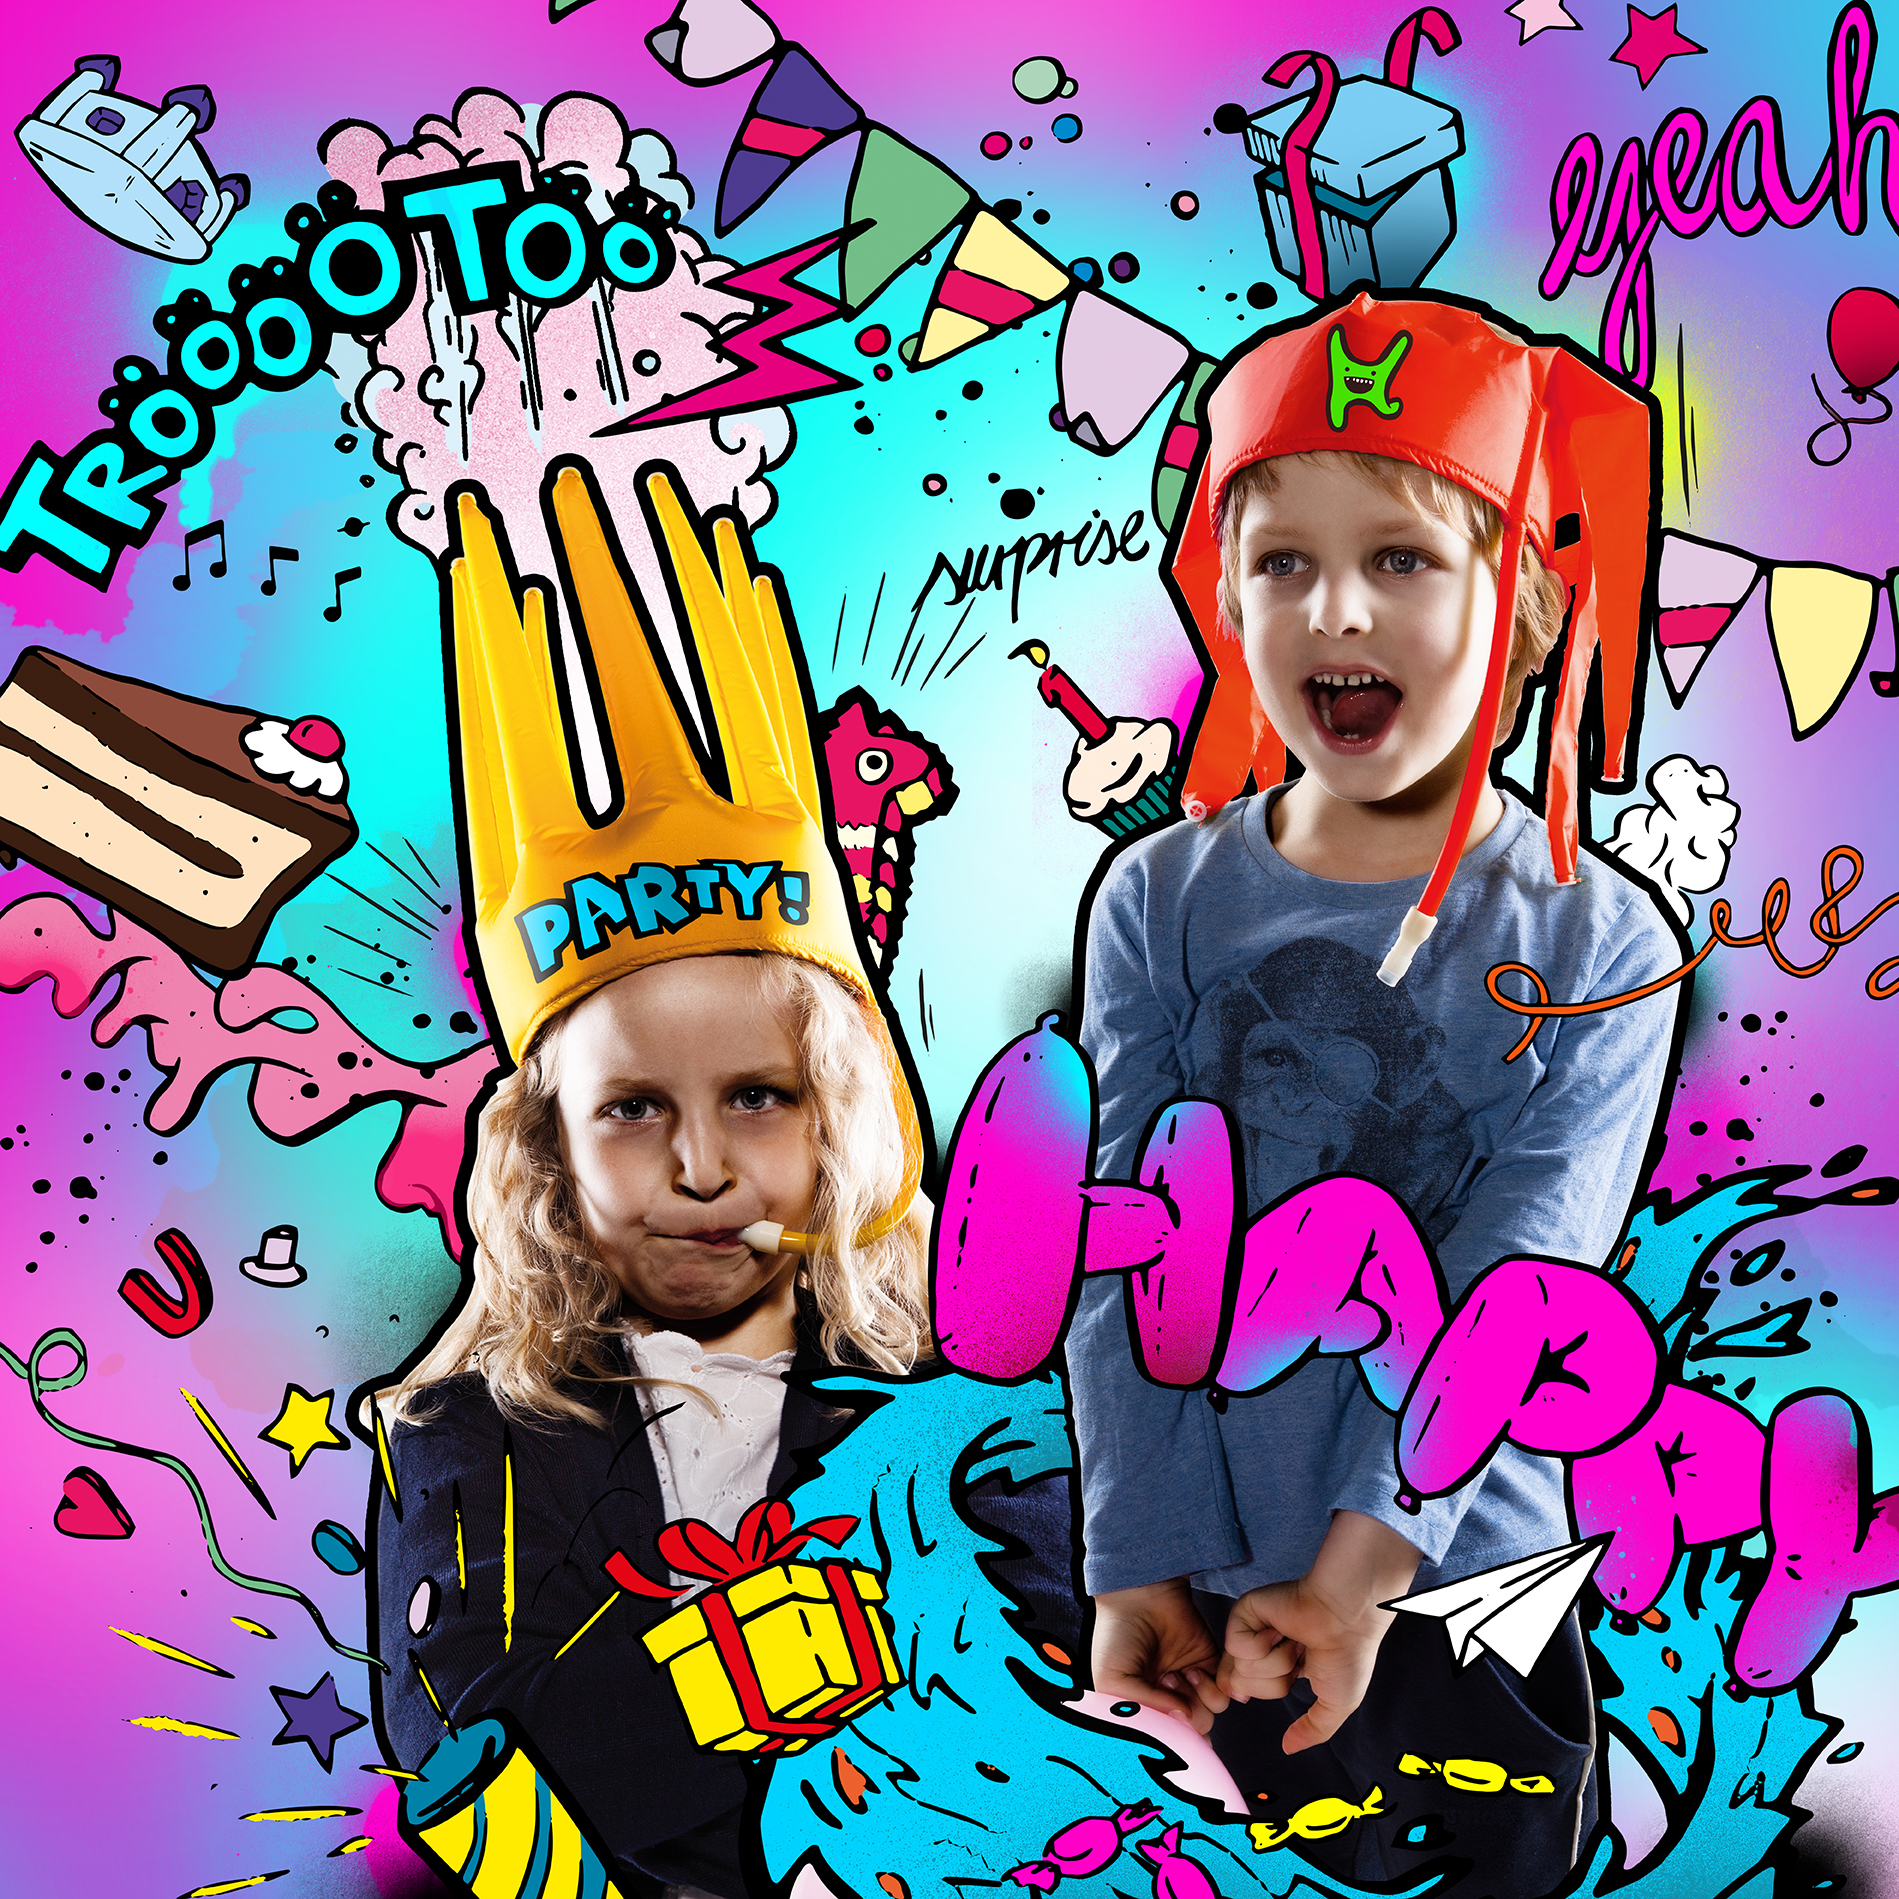 trötenkroene_troetenkrone_party blower crown_party_horn_crown.jpg